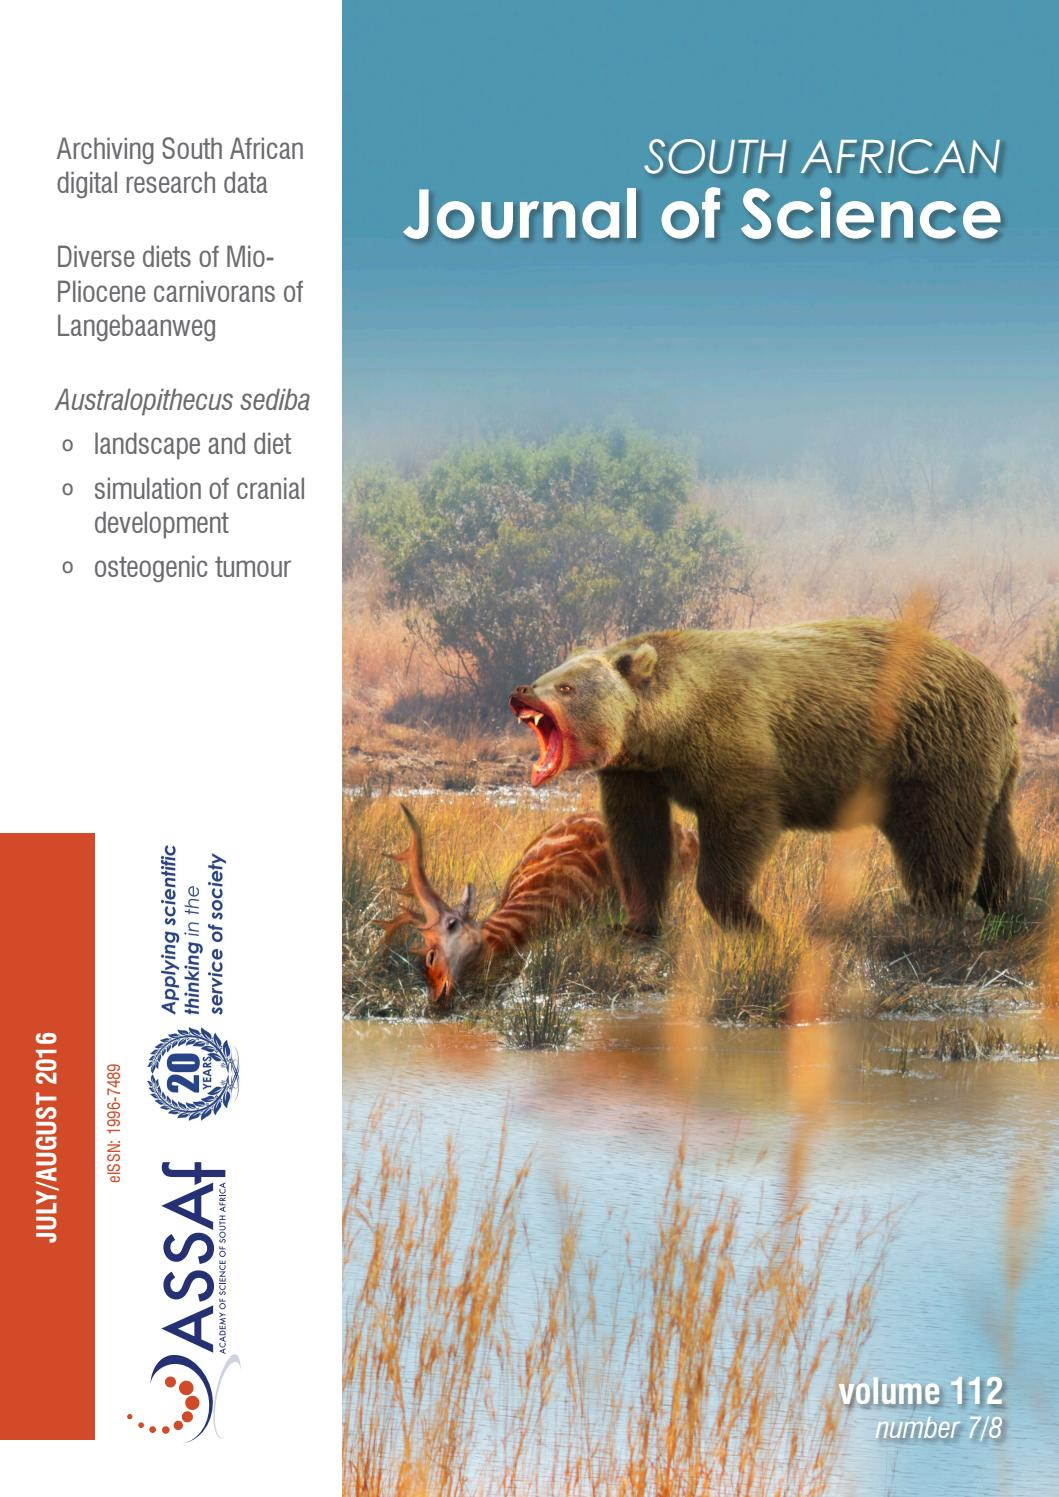 South african journal of science volume 112 issue 78 by south south african journal of science volume 112 issue 78 by south african journal of science issuu fandeluxe Choice Image